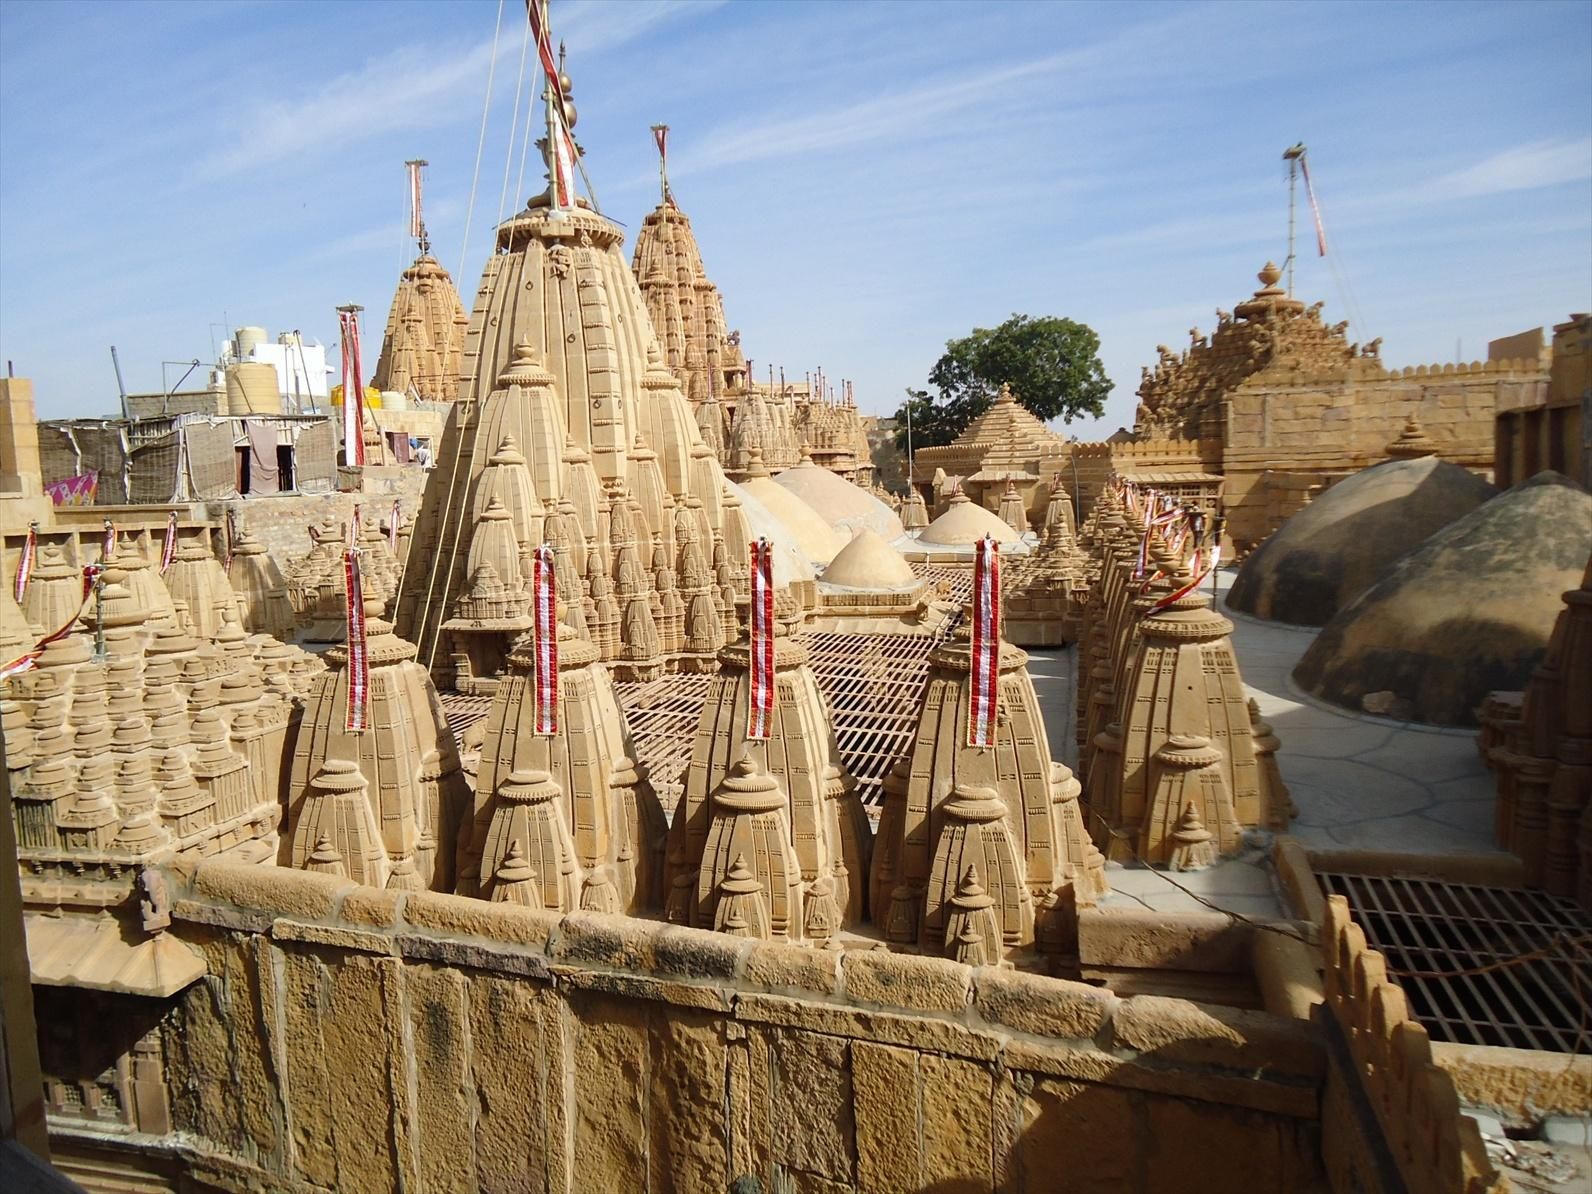 Ganesh Guest House - Hotel and accommodation in India in Jaisalmer